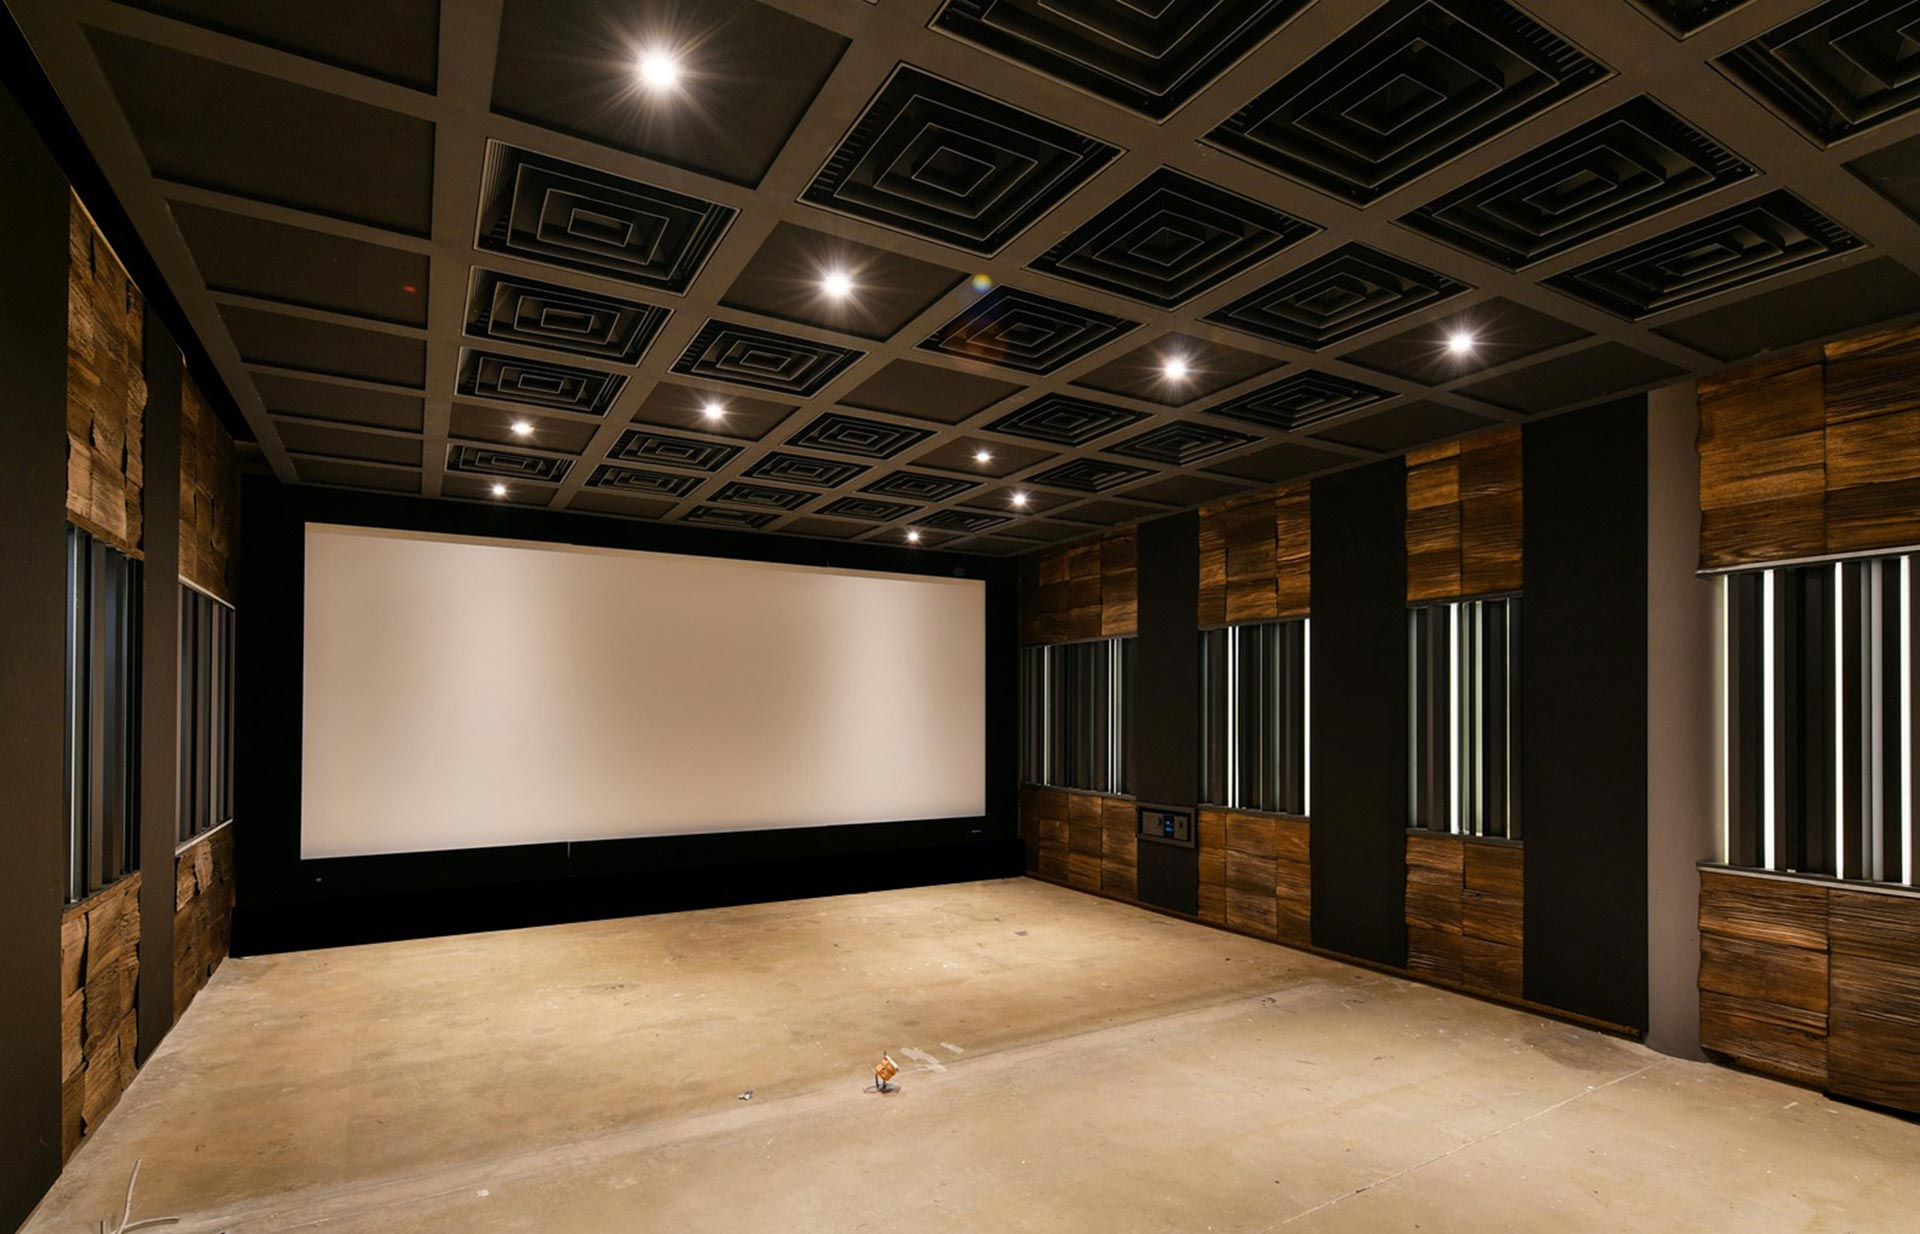 The incredible My Sound Immersive Audio Reference Cinema